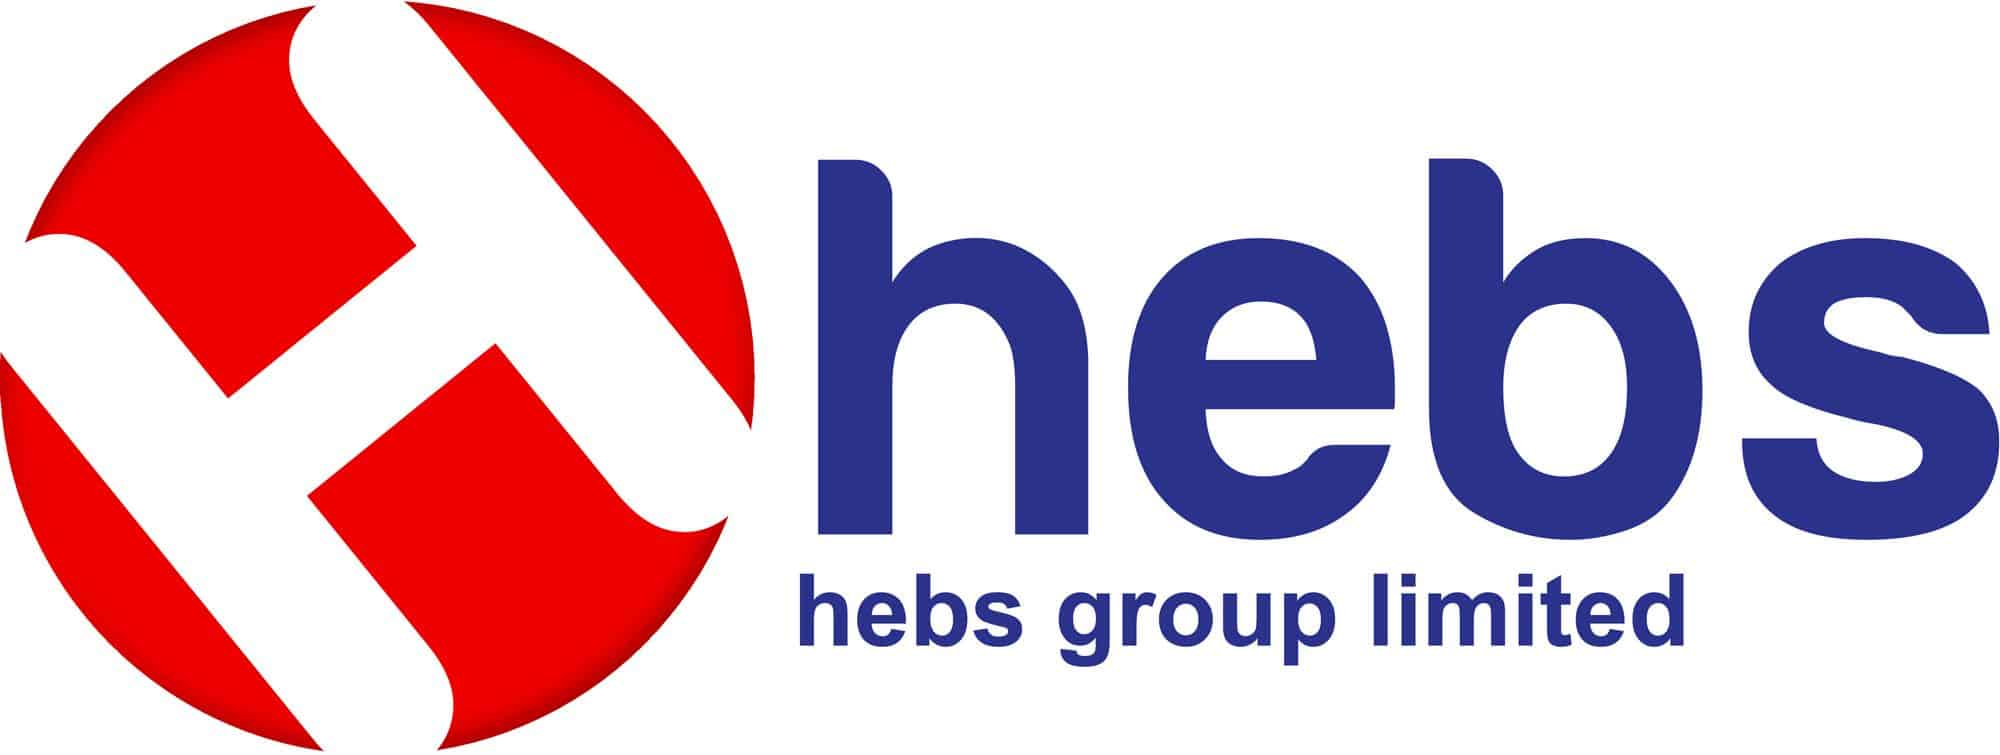 The hebs Group